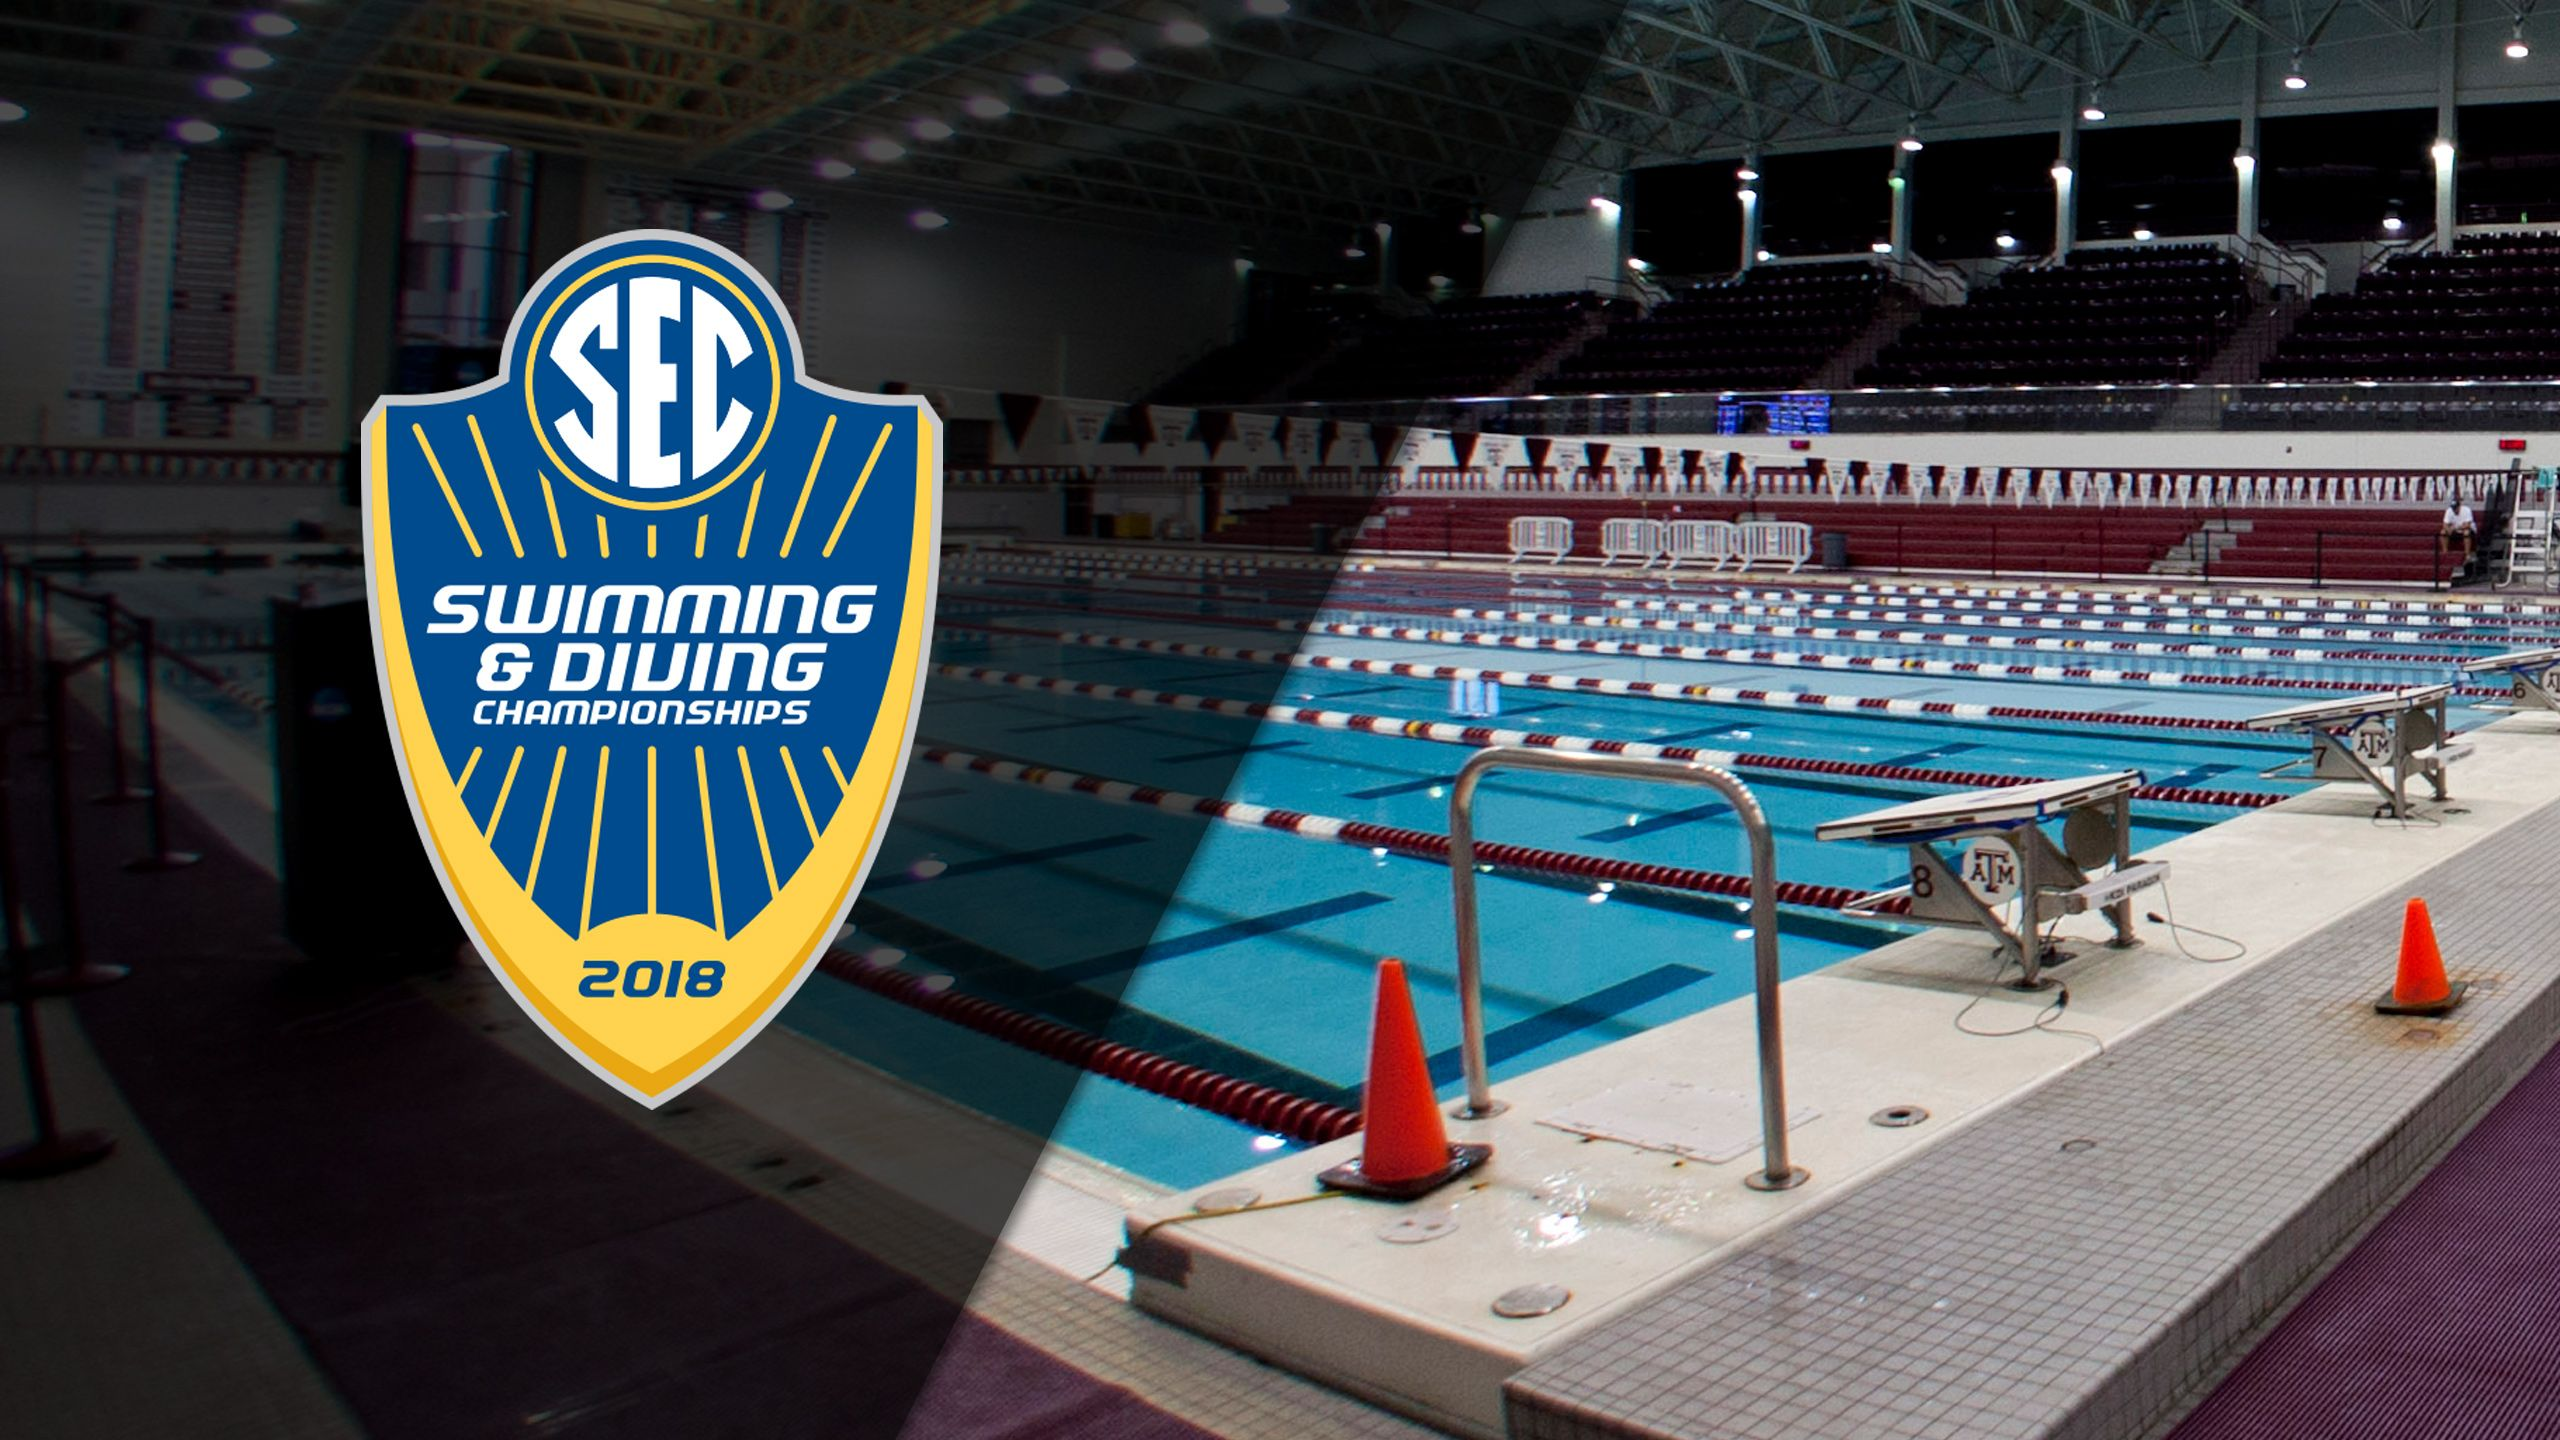 2018 SEC Swimming & Diving Championship